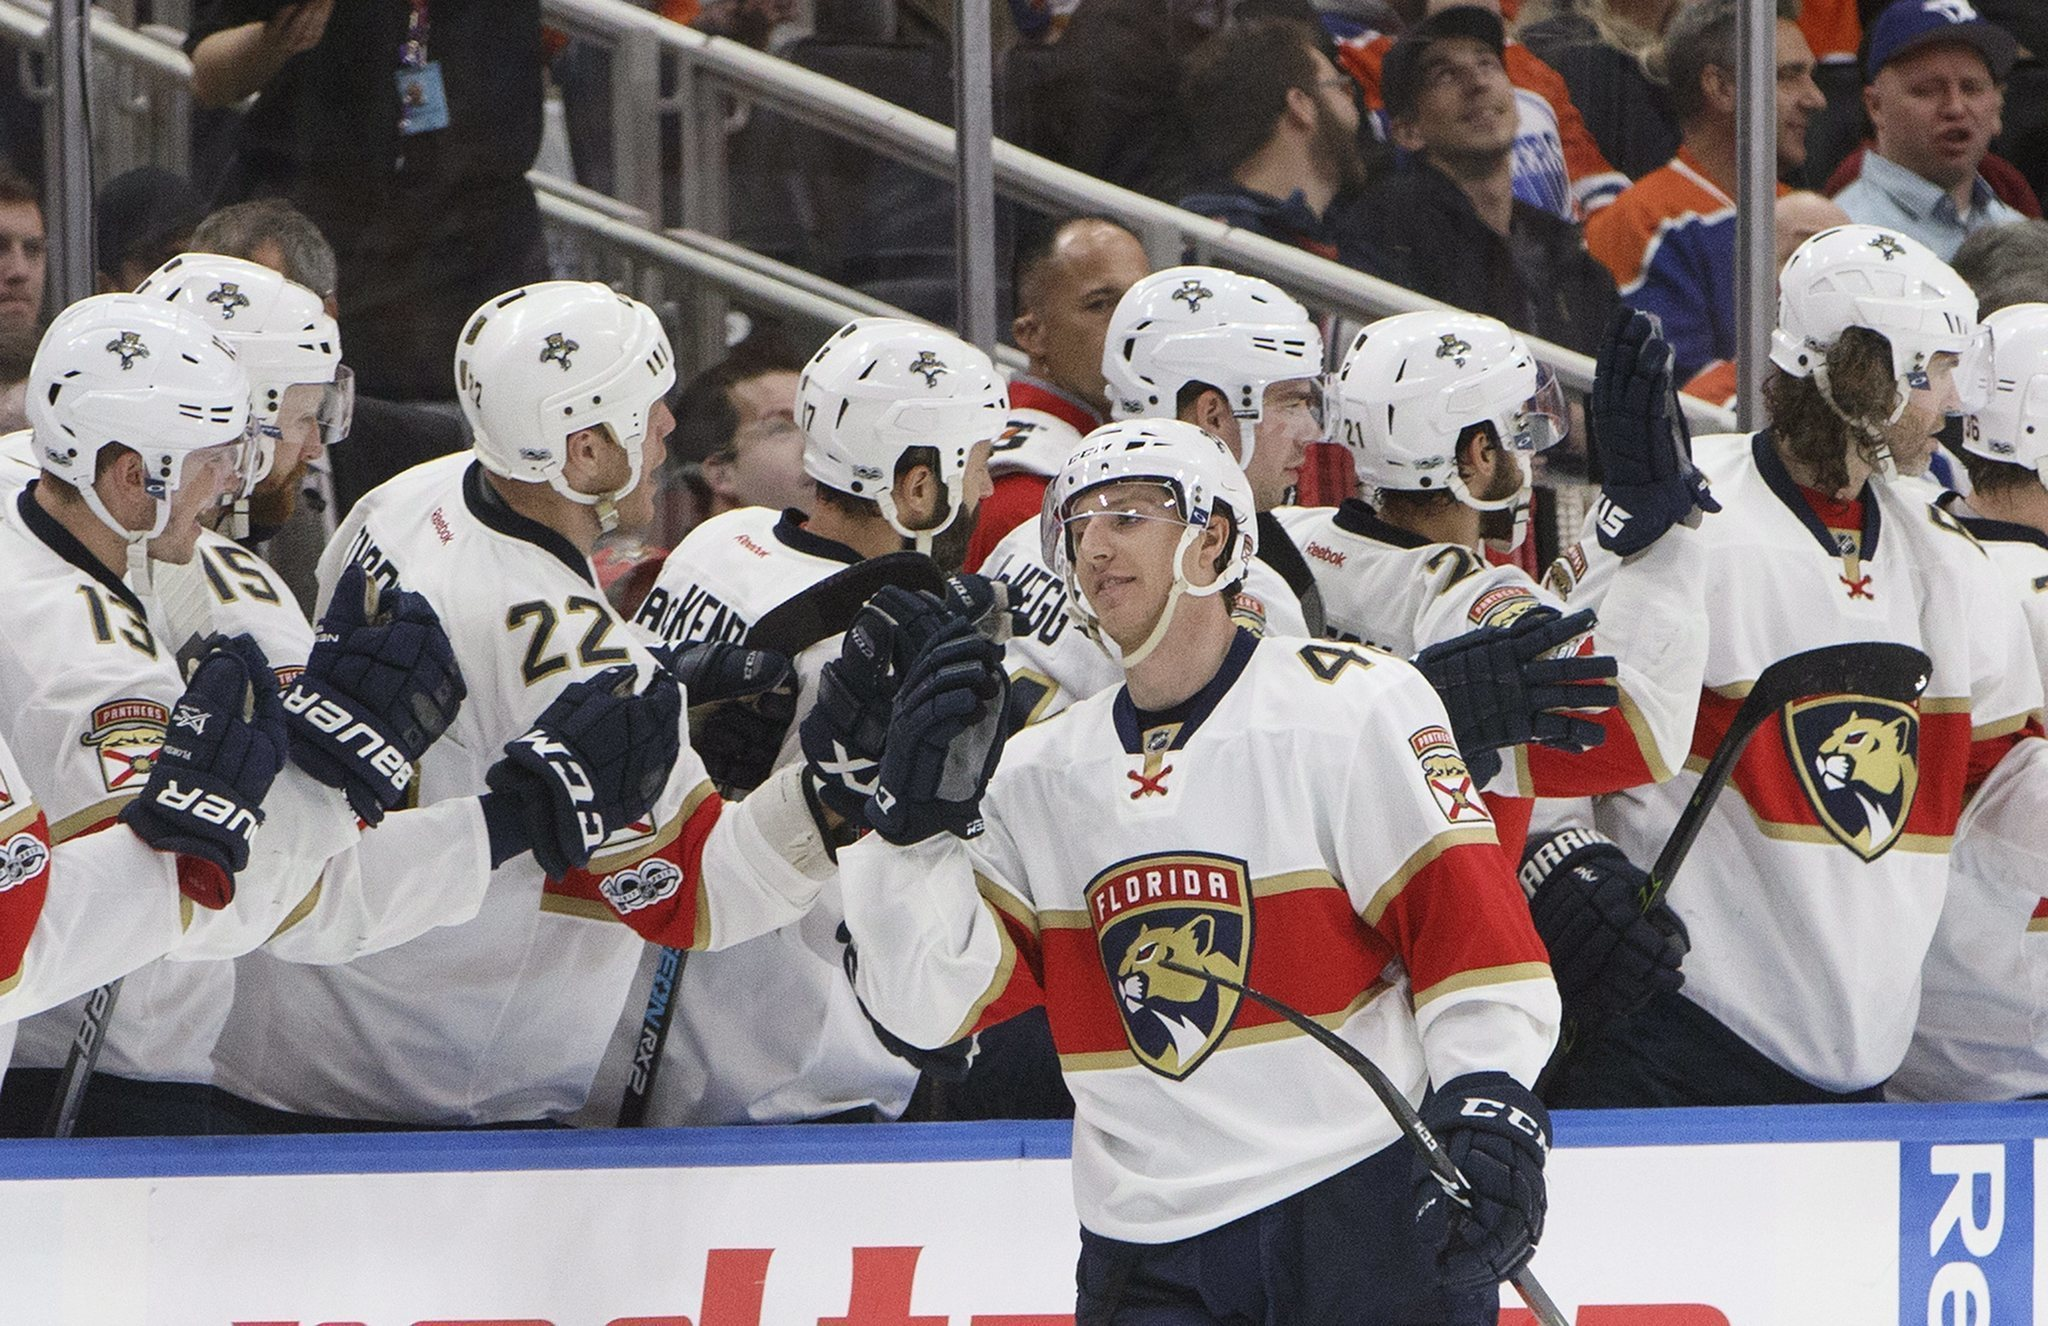 Sfl-photos-panthers-at-oilers-20170118